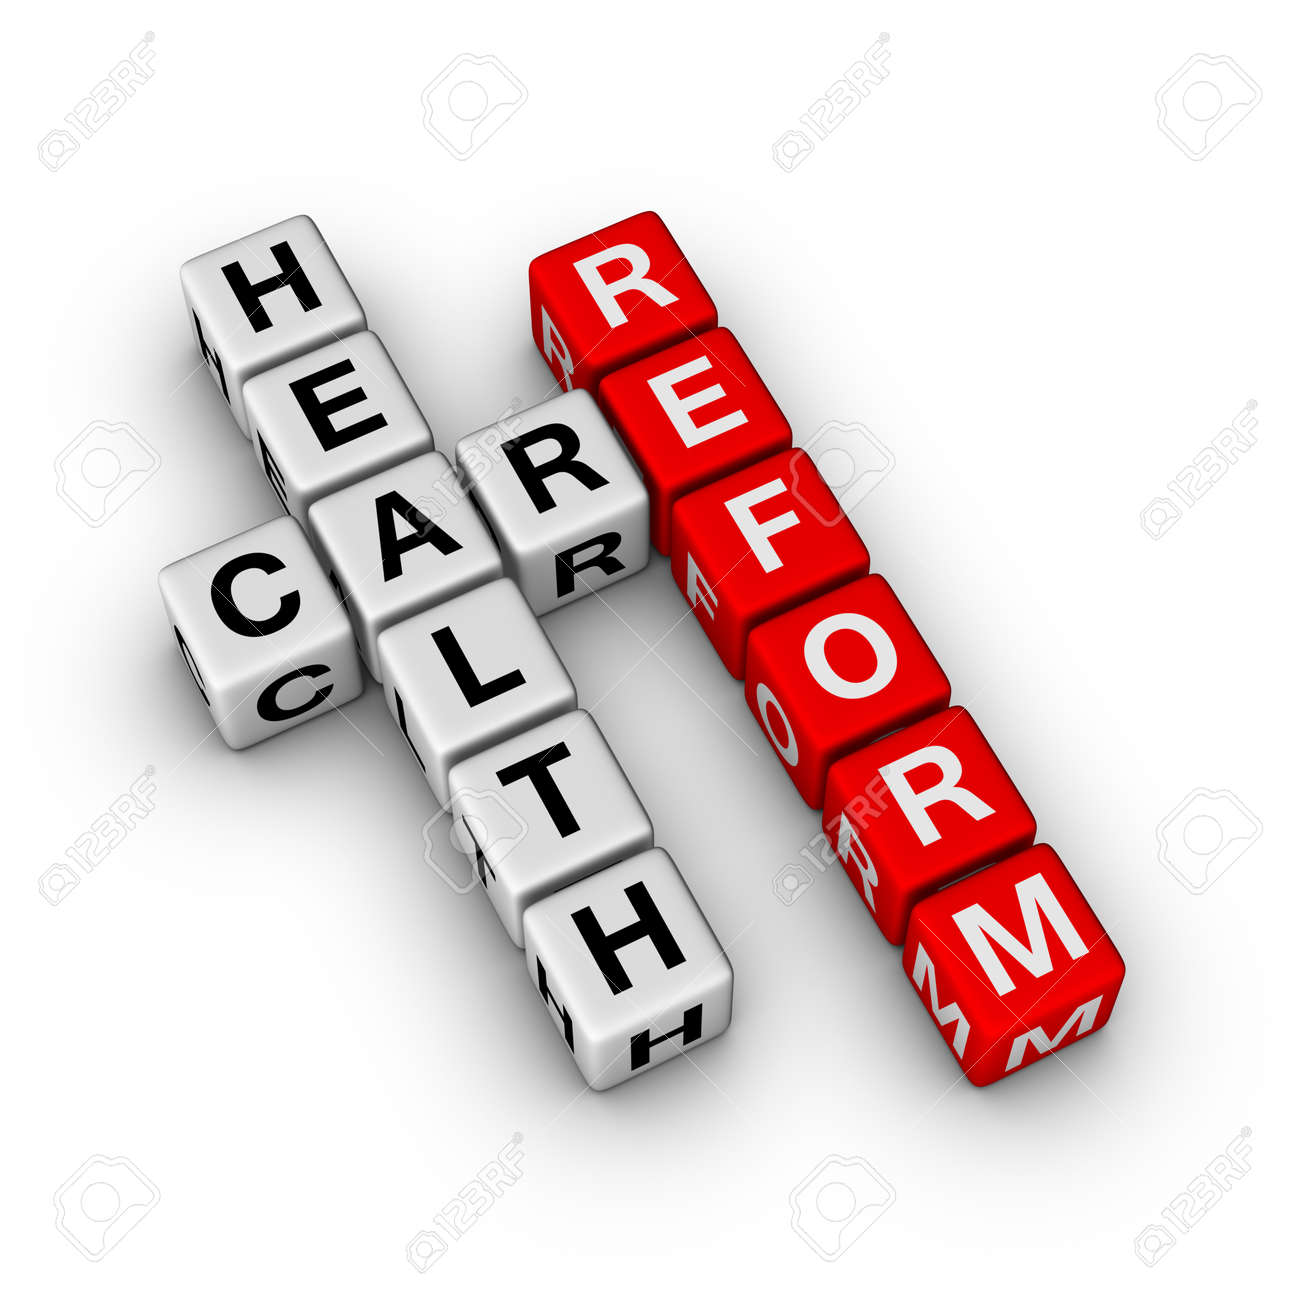 Healthcare Reform cubes crossword series Stock Photo - 8720528